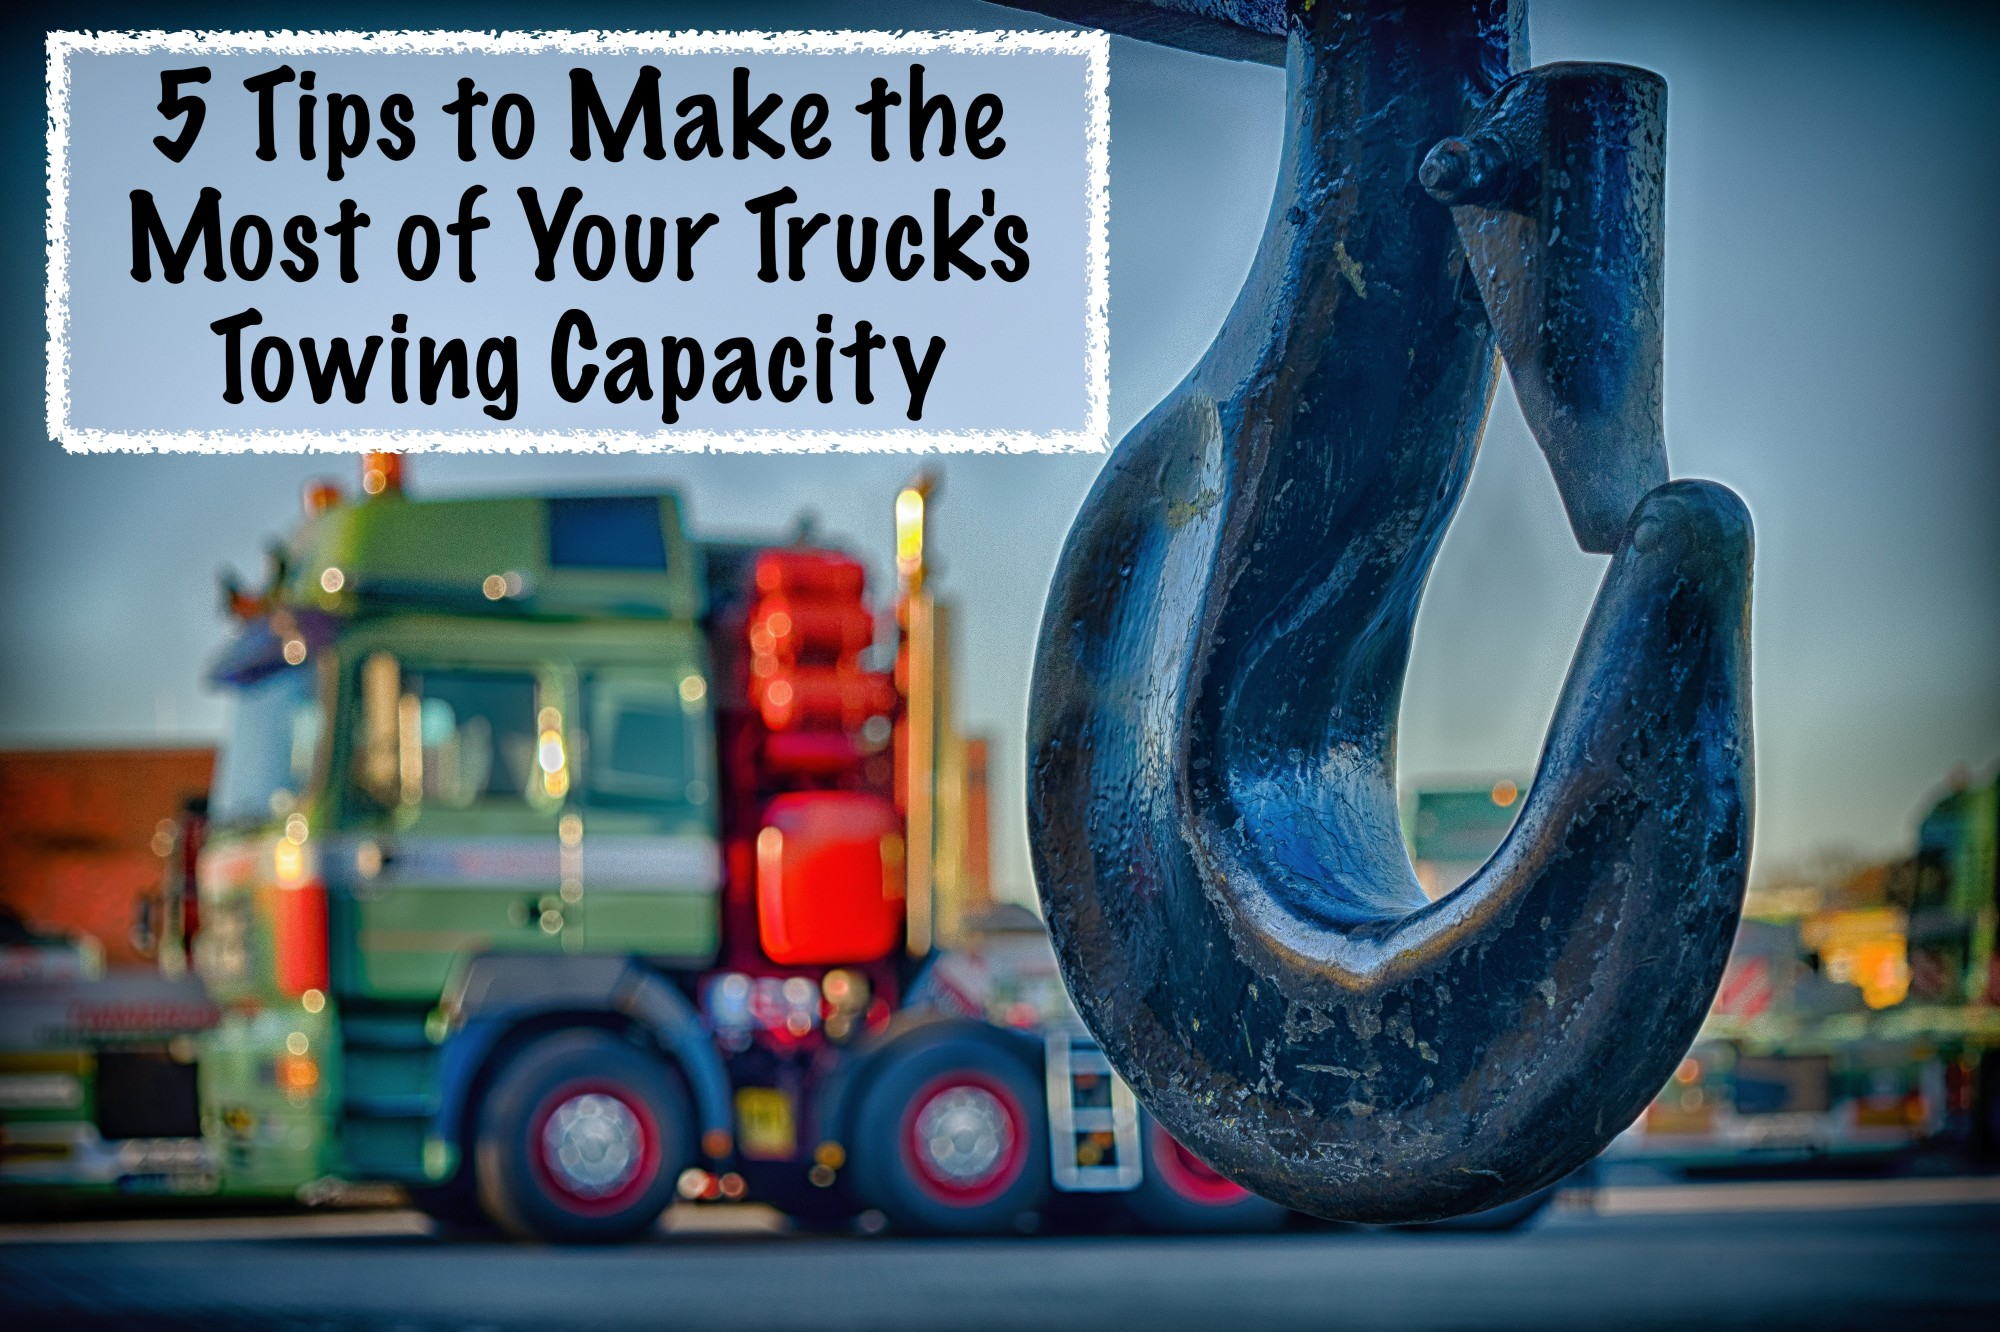 5 tips to make the most of your truck's towing capacity